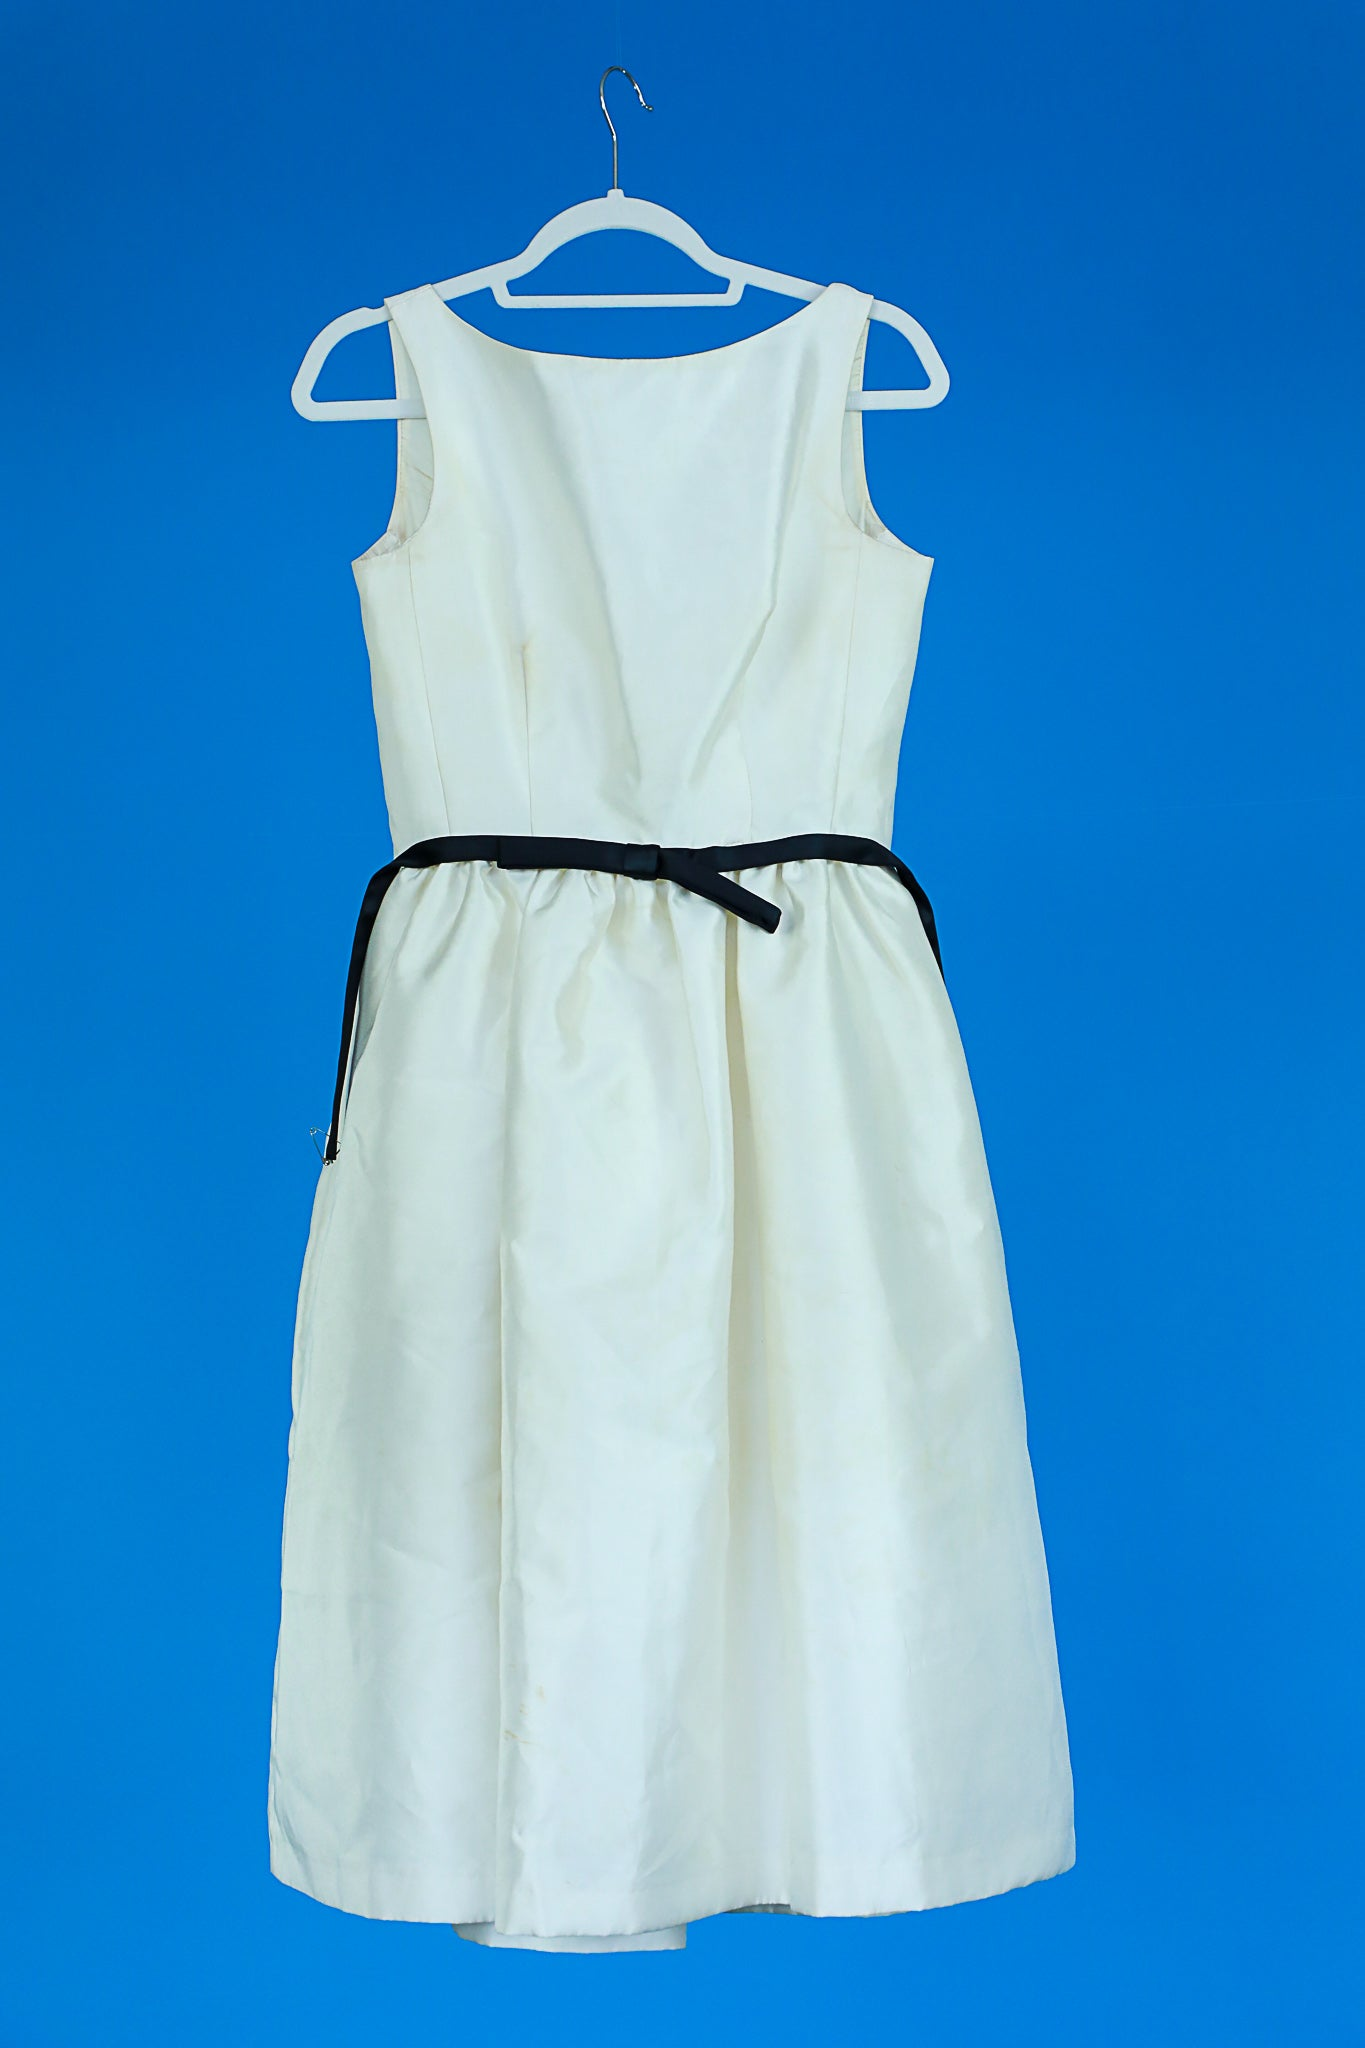 Taylor White Dress with black sash